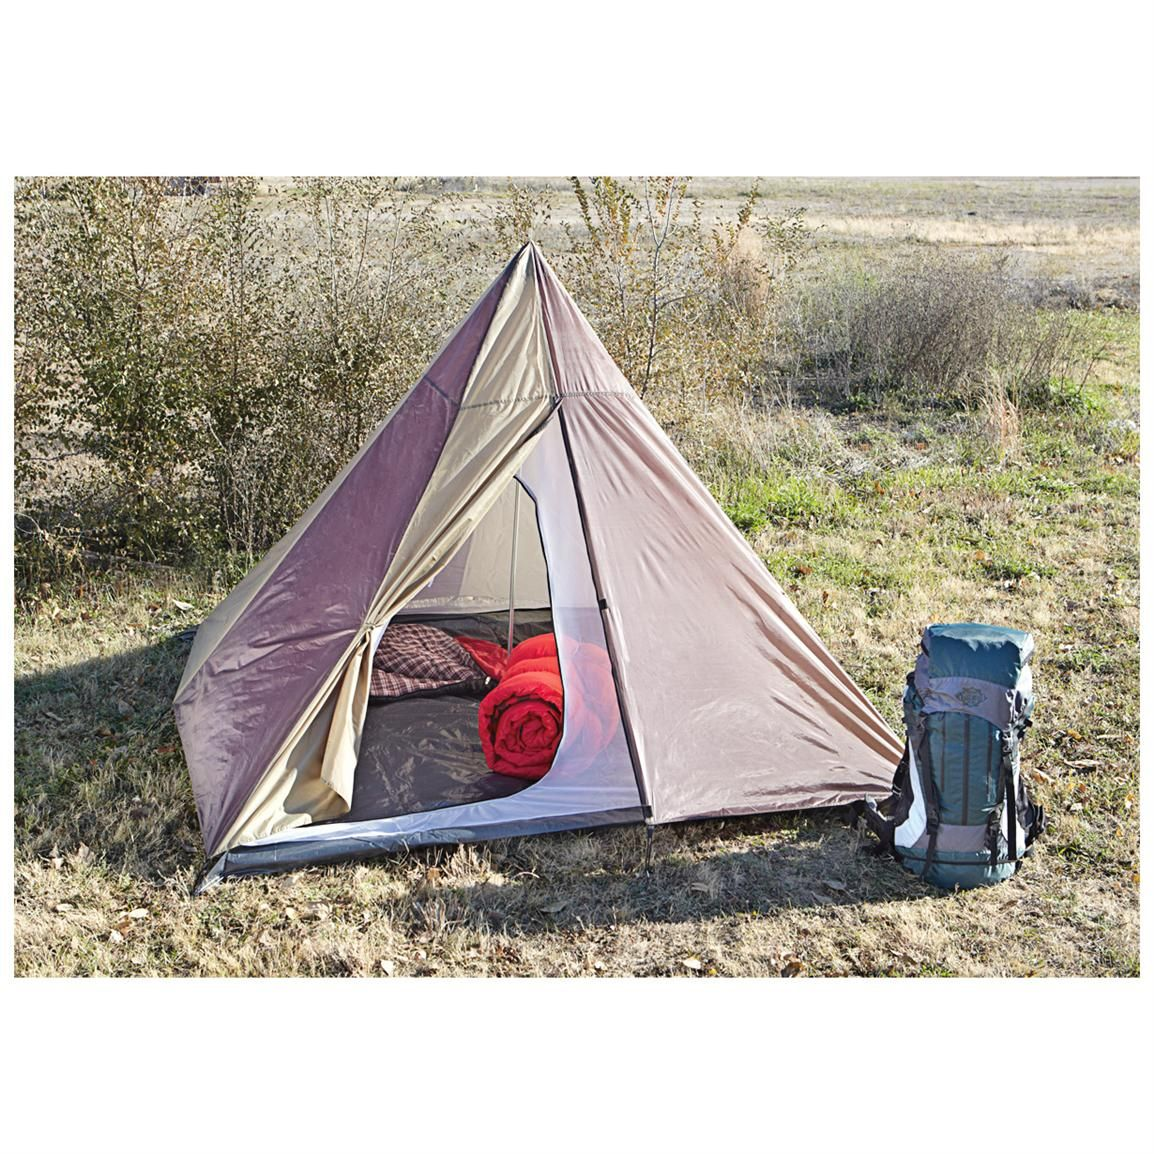 Small Tents for Backpacking - top Rated Interior Paint Check more at //  sc 1 st  Pinterest & Small Tents for Backpacking - top Rated Interior Paint Check more ...